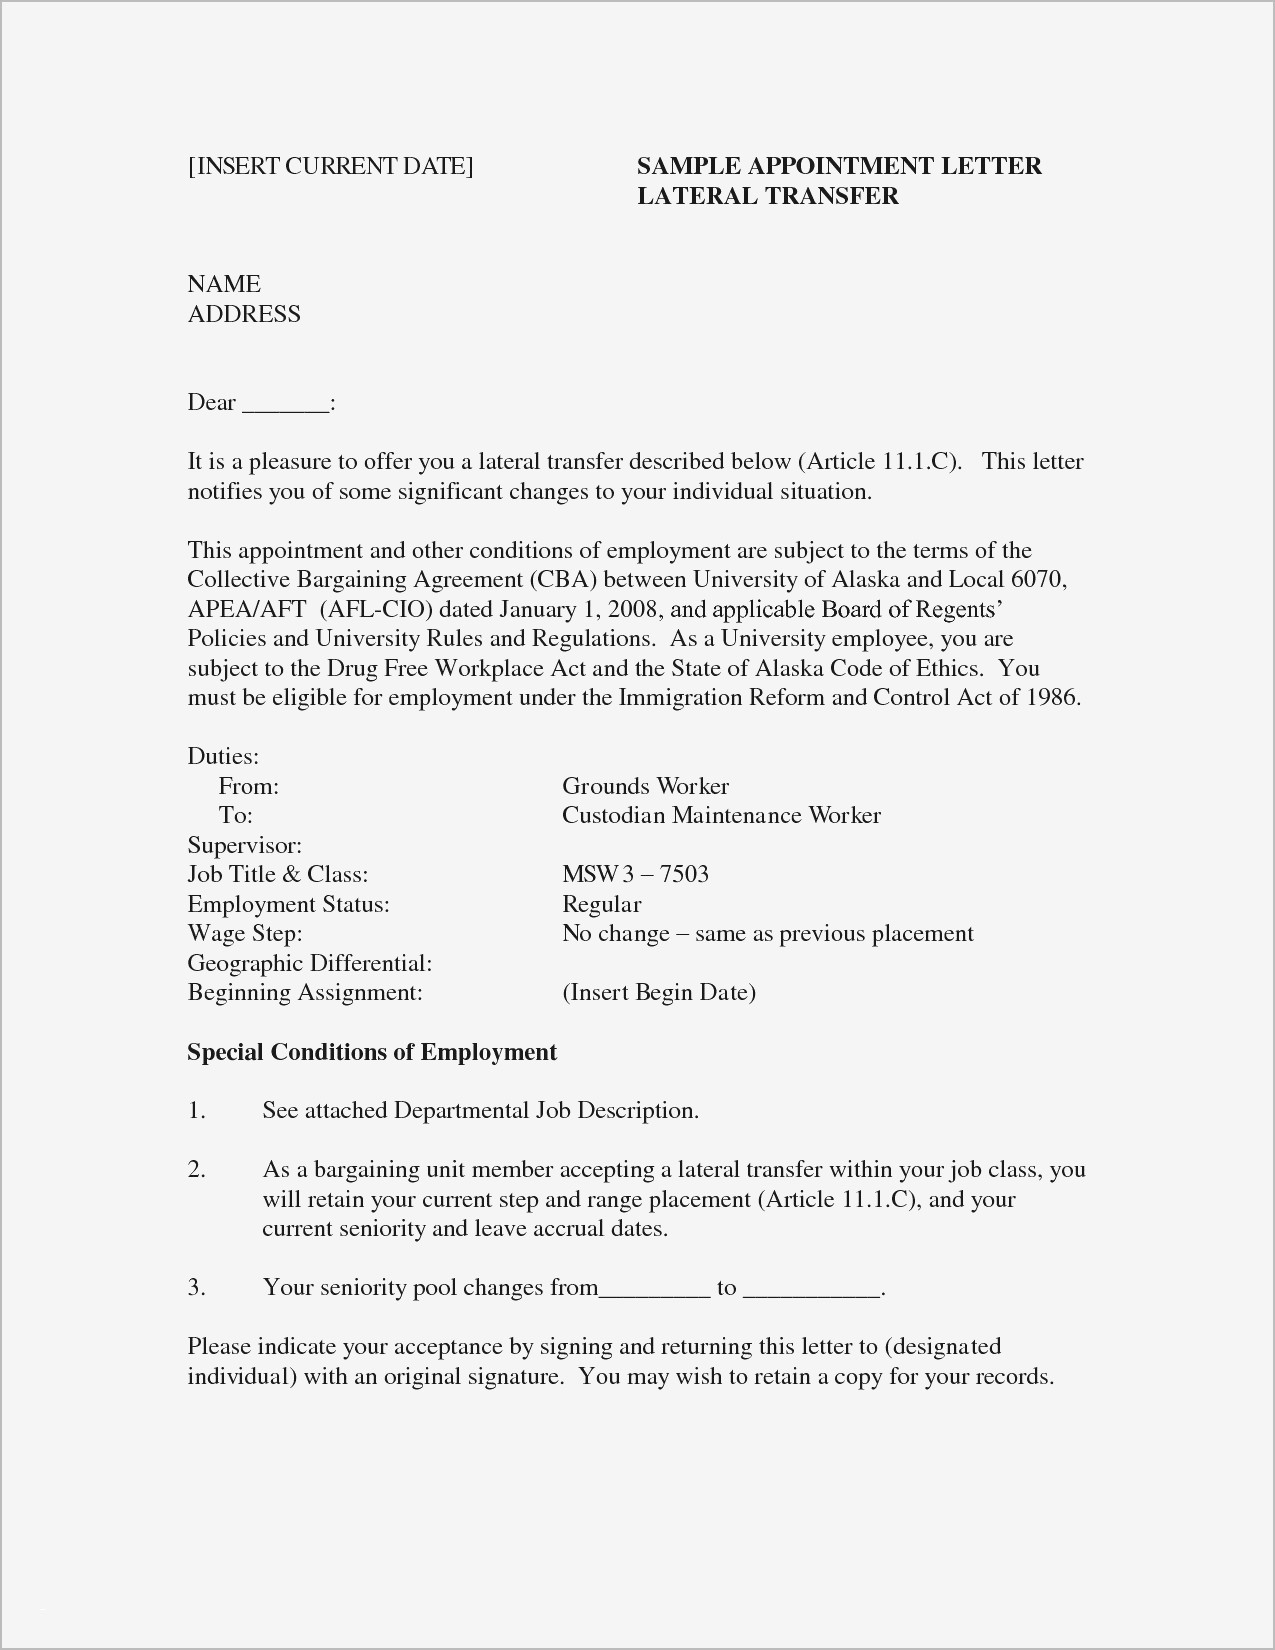 security resume example-Security Resume Skills 23 Security Resume Skills 14-n